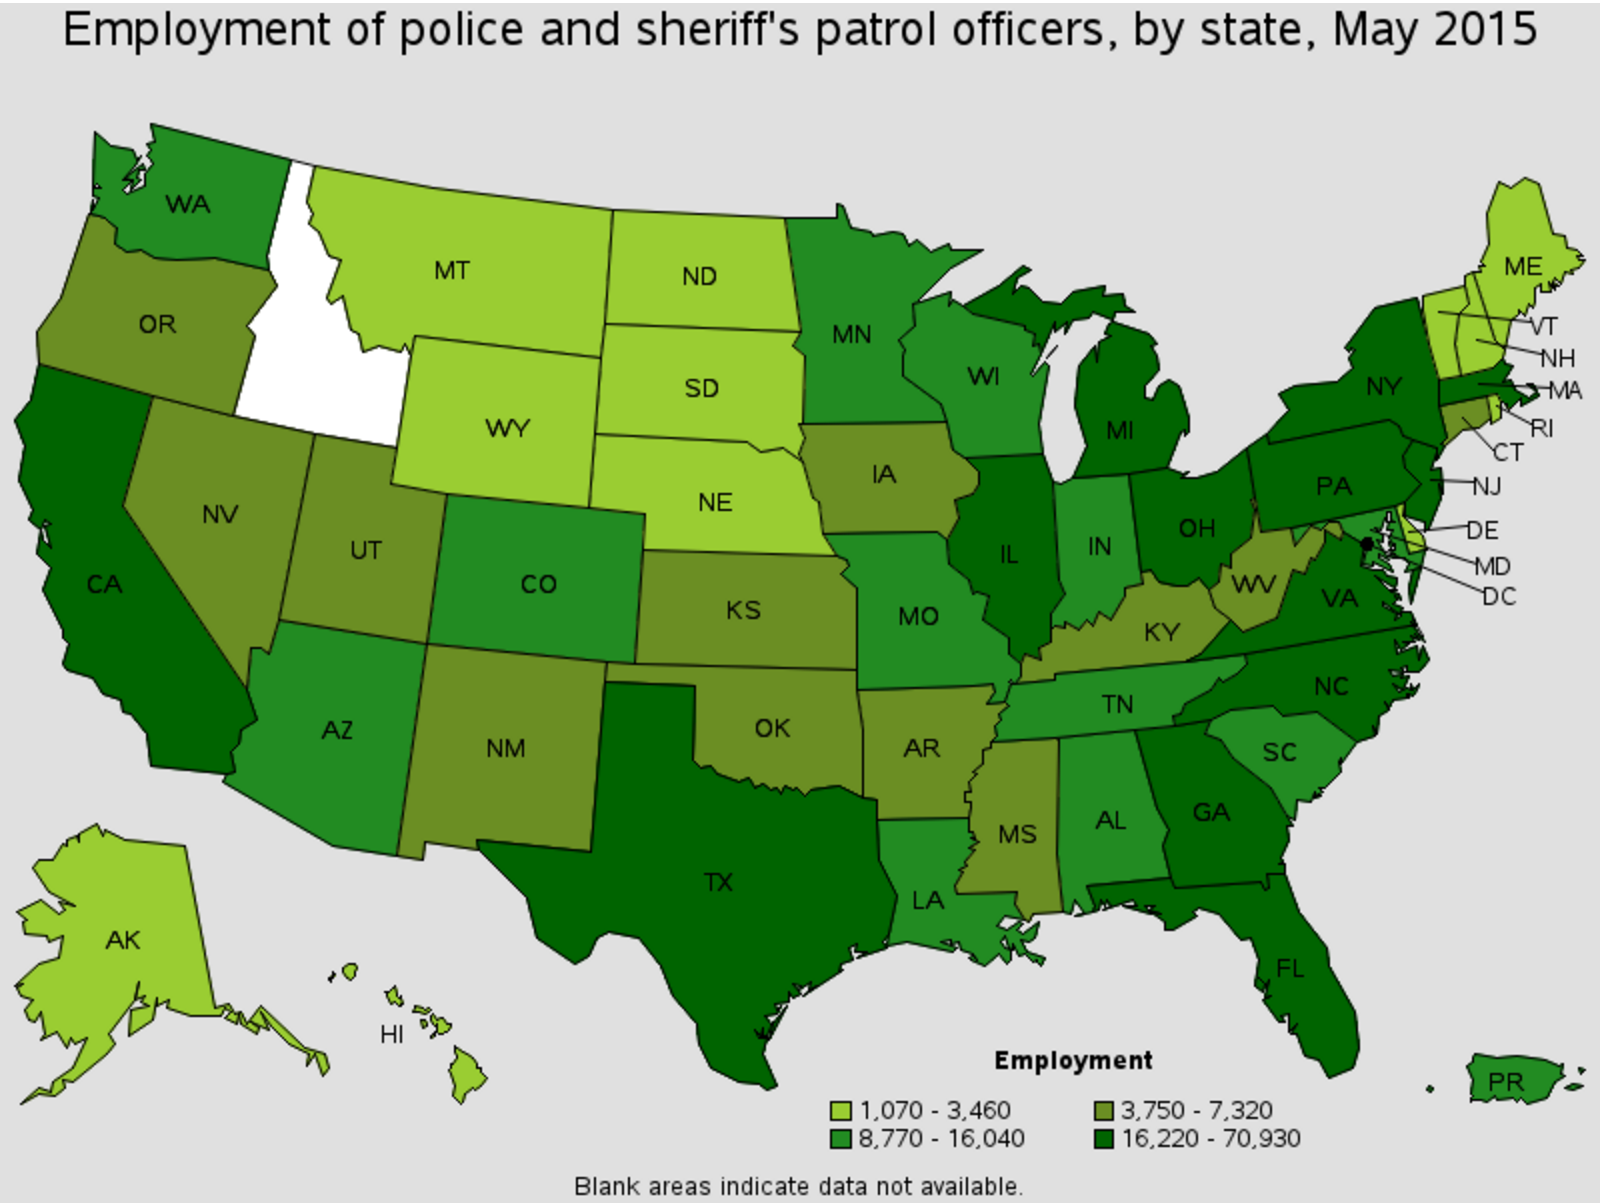 Beeville police officer career outlook by state